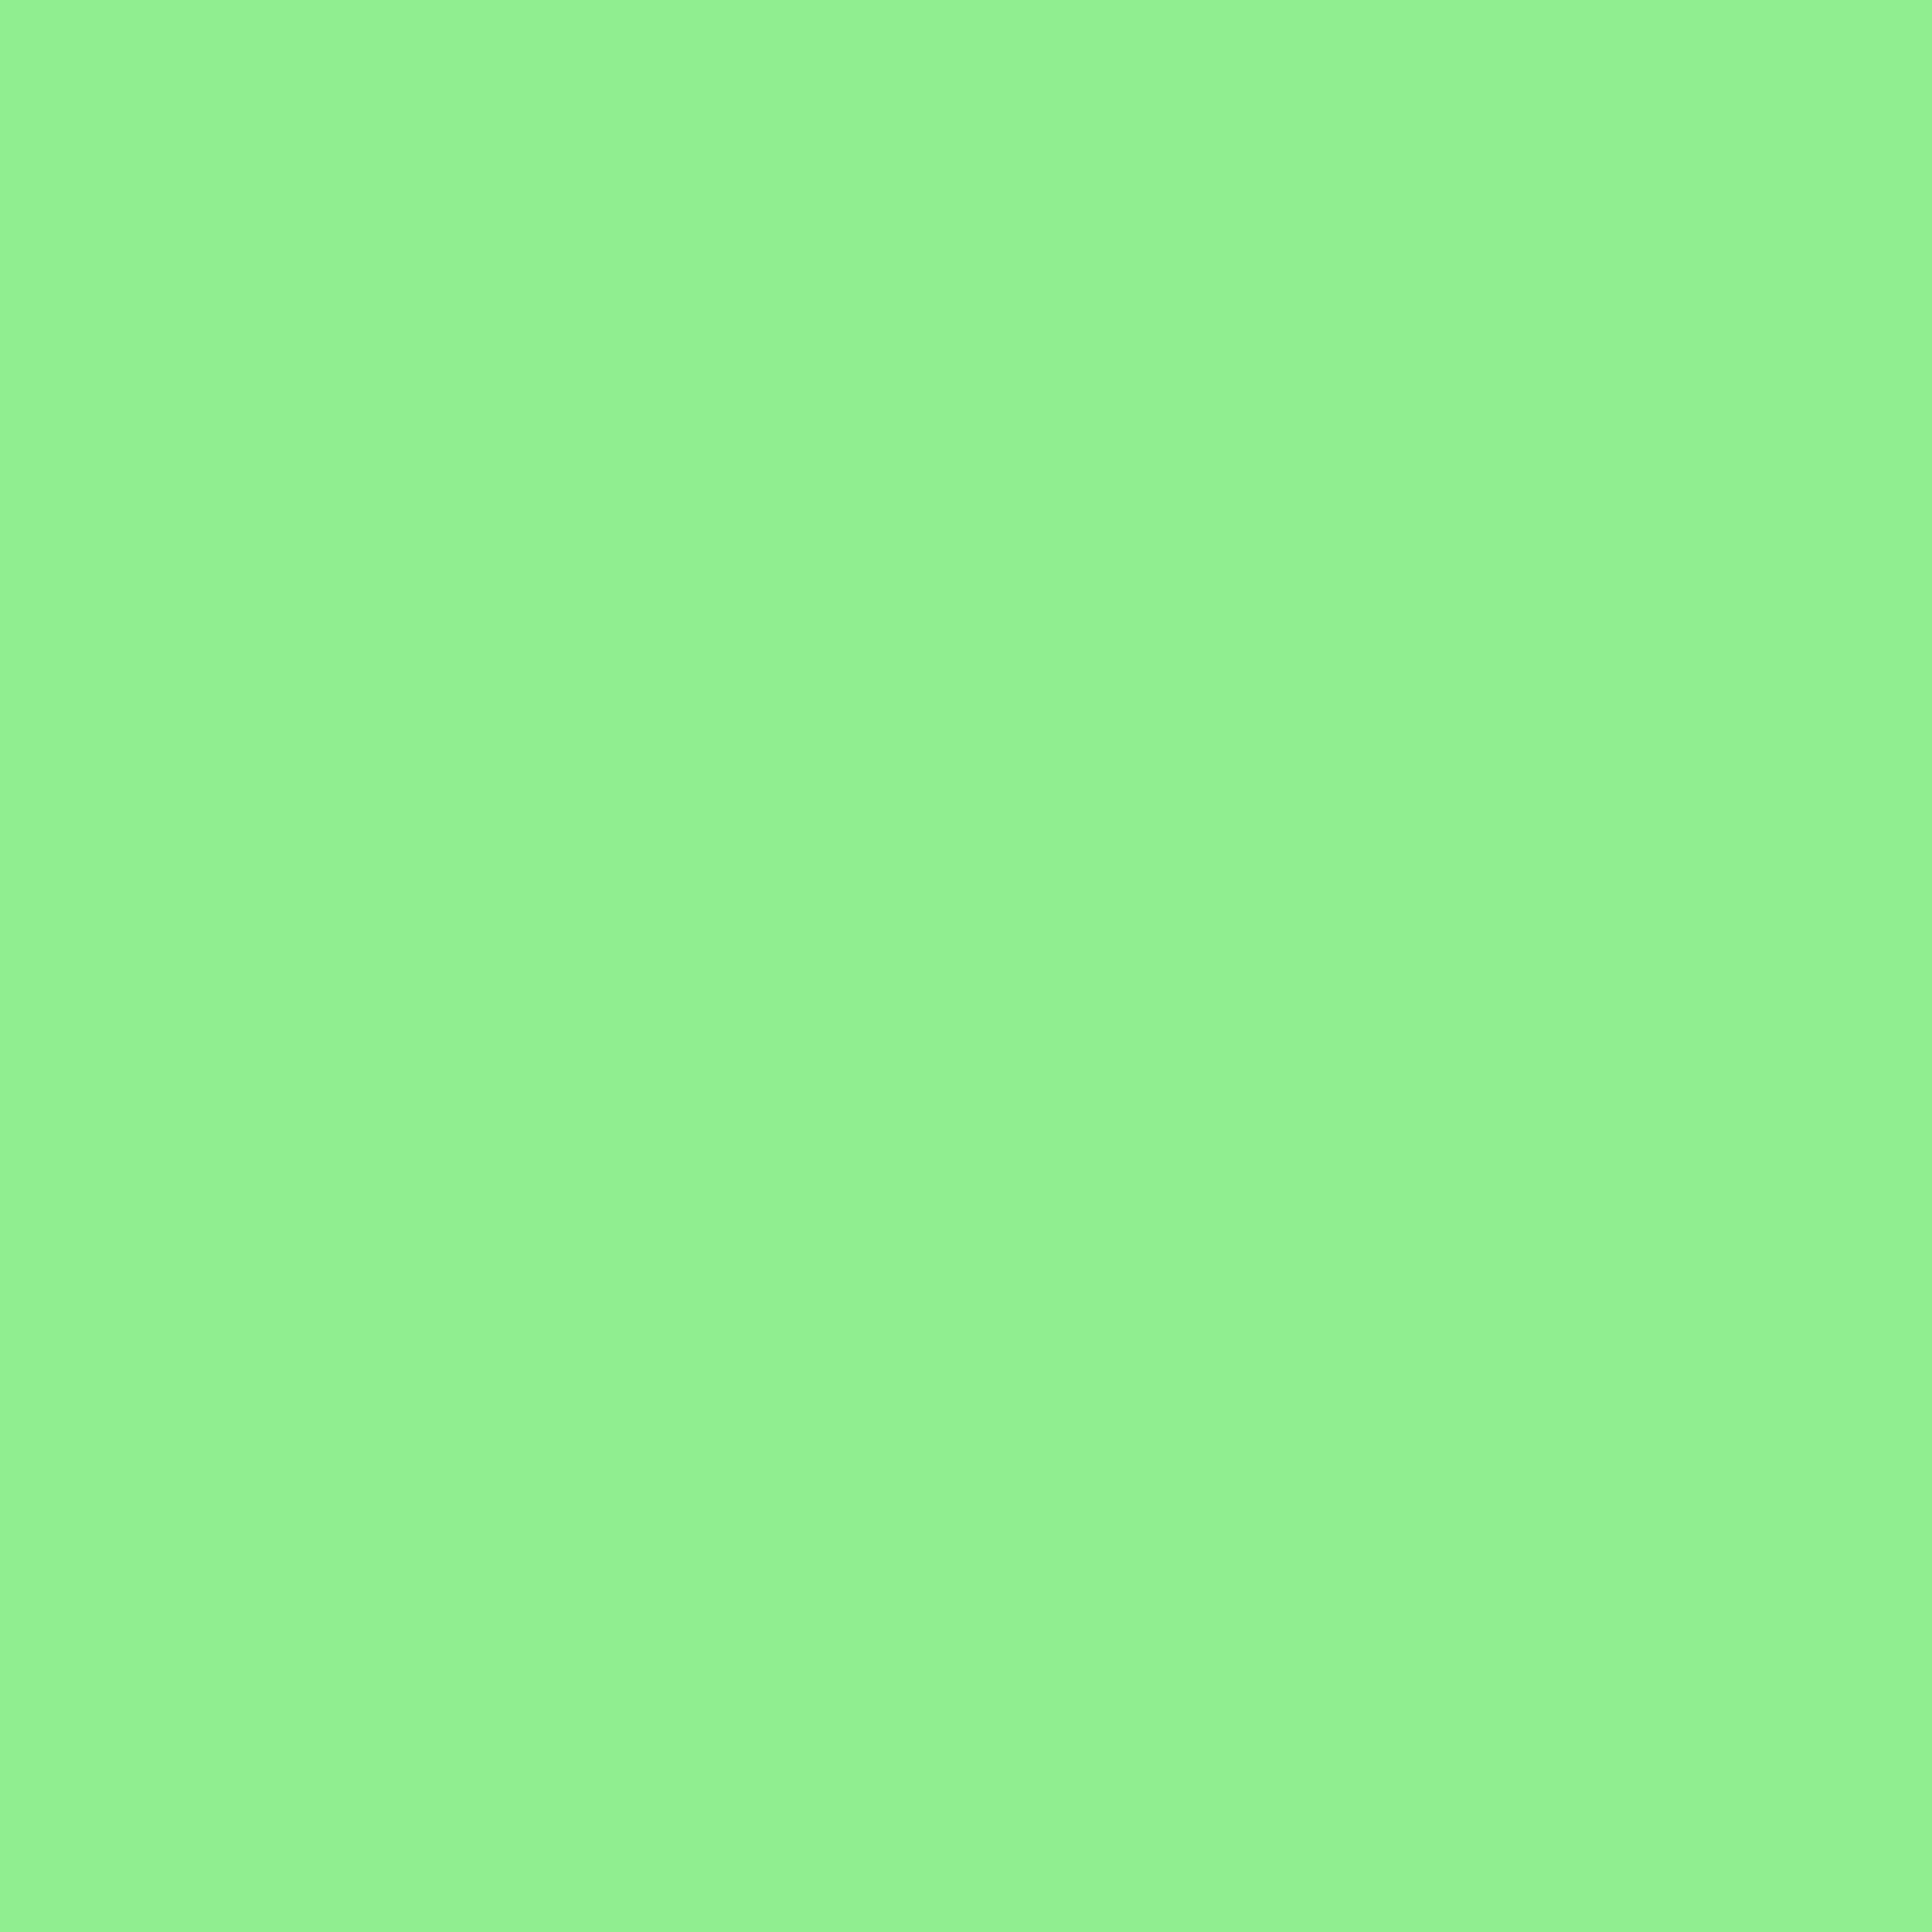 2048x2048 Light Green Solid Color Background